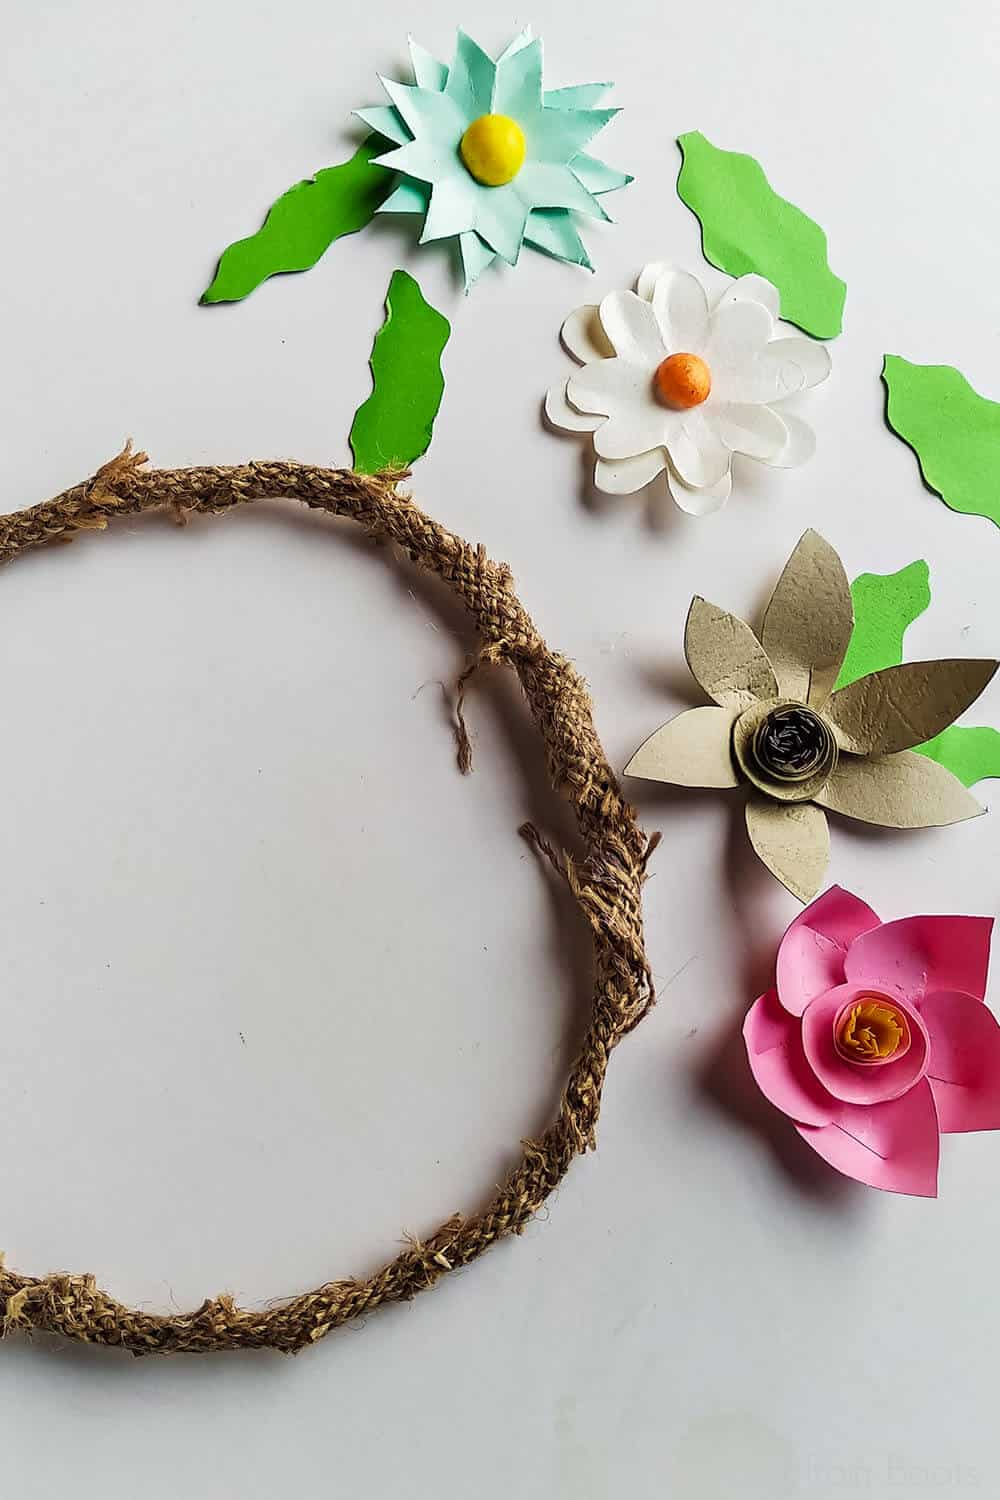 assembling a wreath of paper flowers